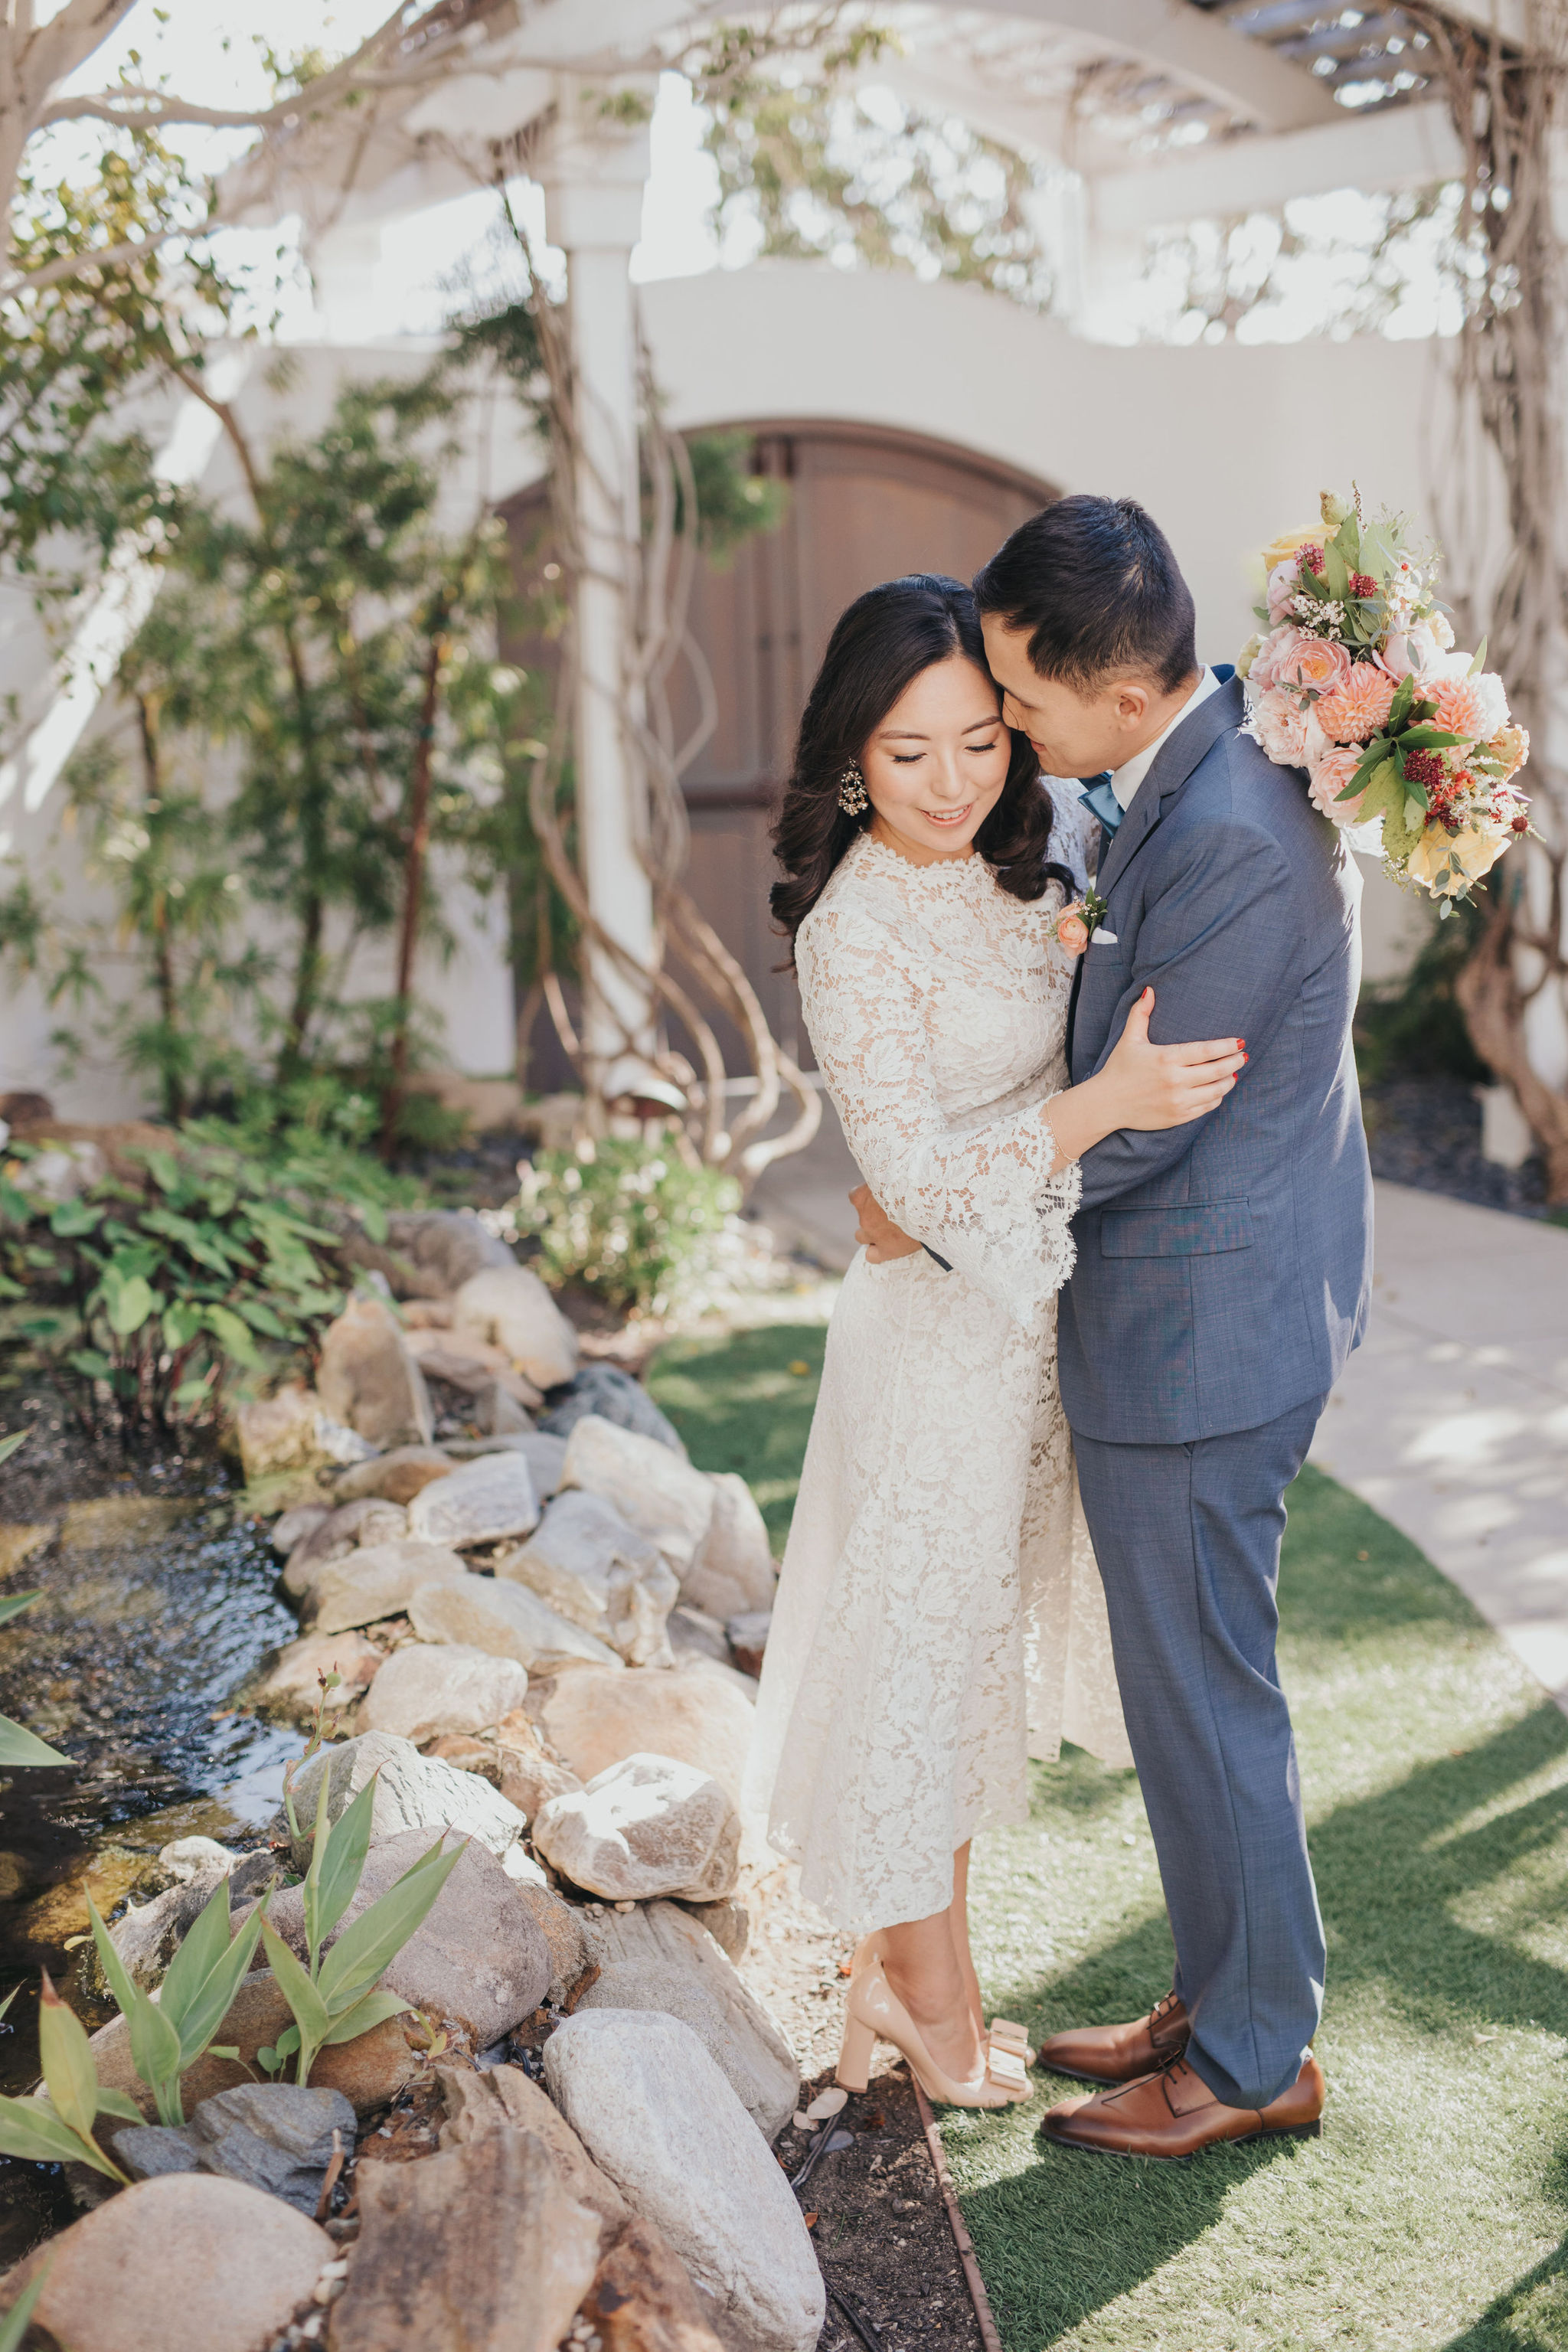 Wedding Love | Verandas Beach House